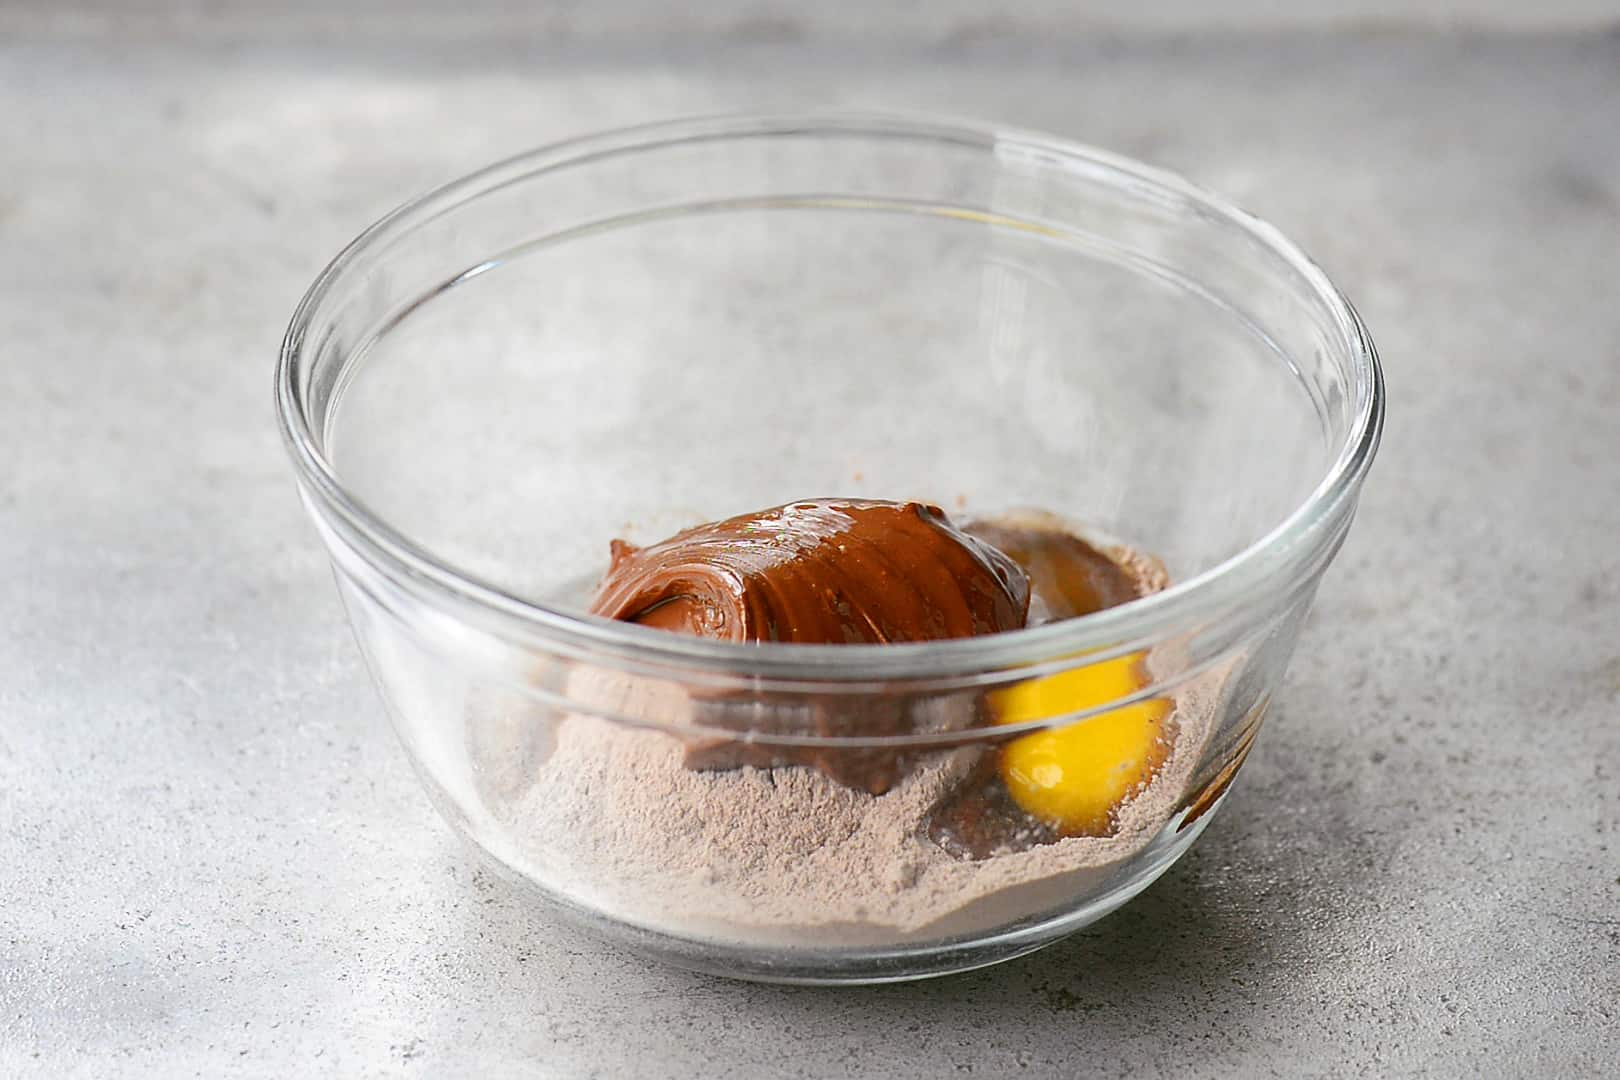 Pudding Mix, Egg and Nutella In A Glass Bowl